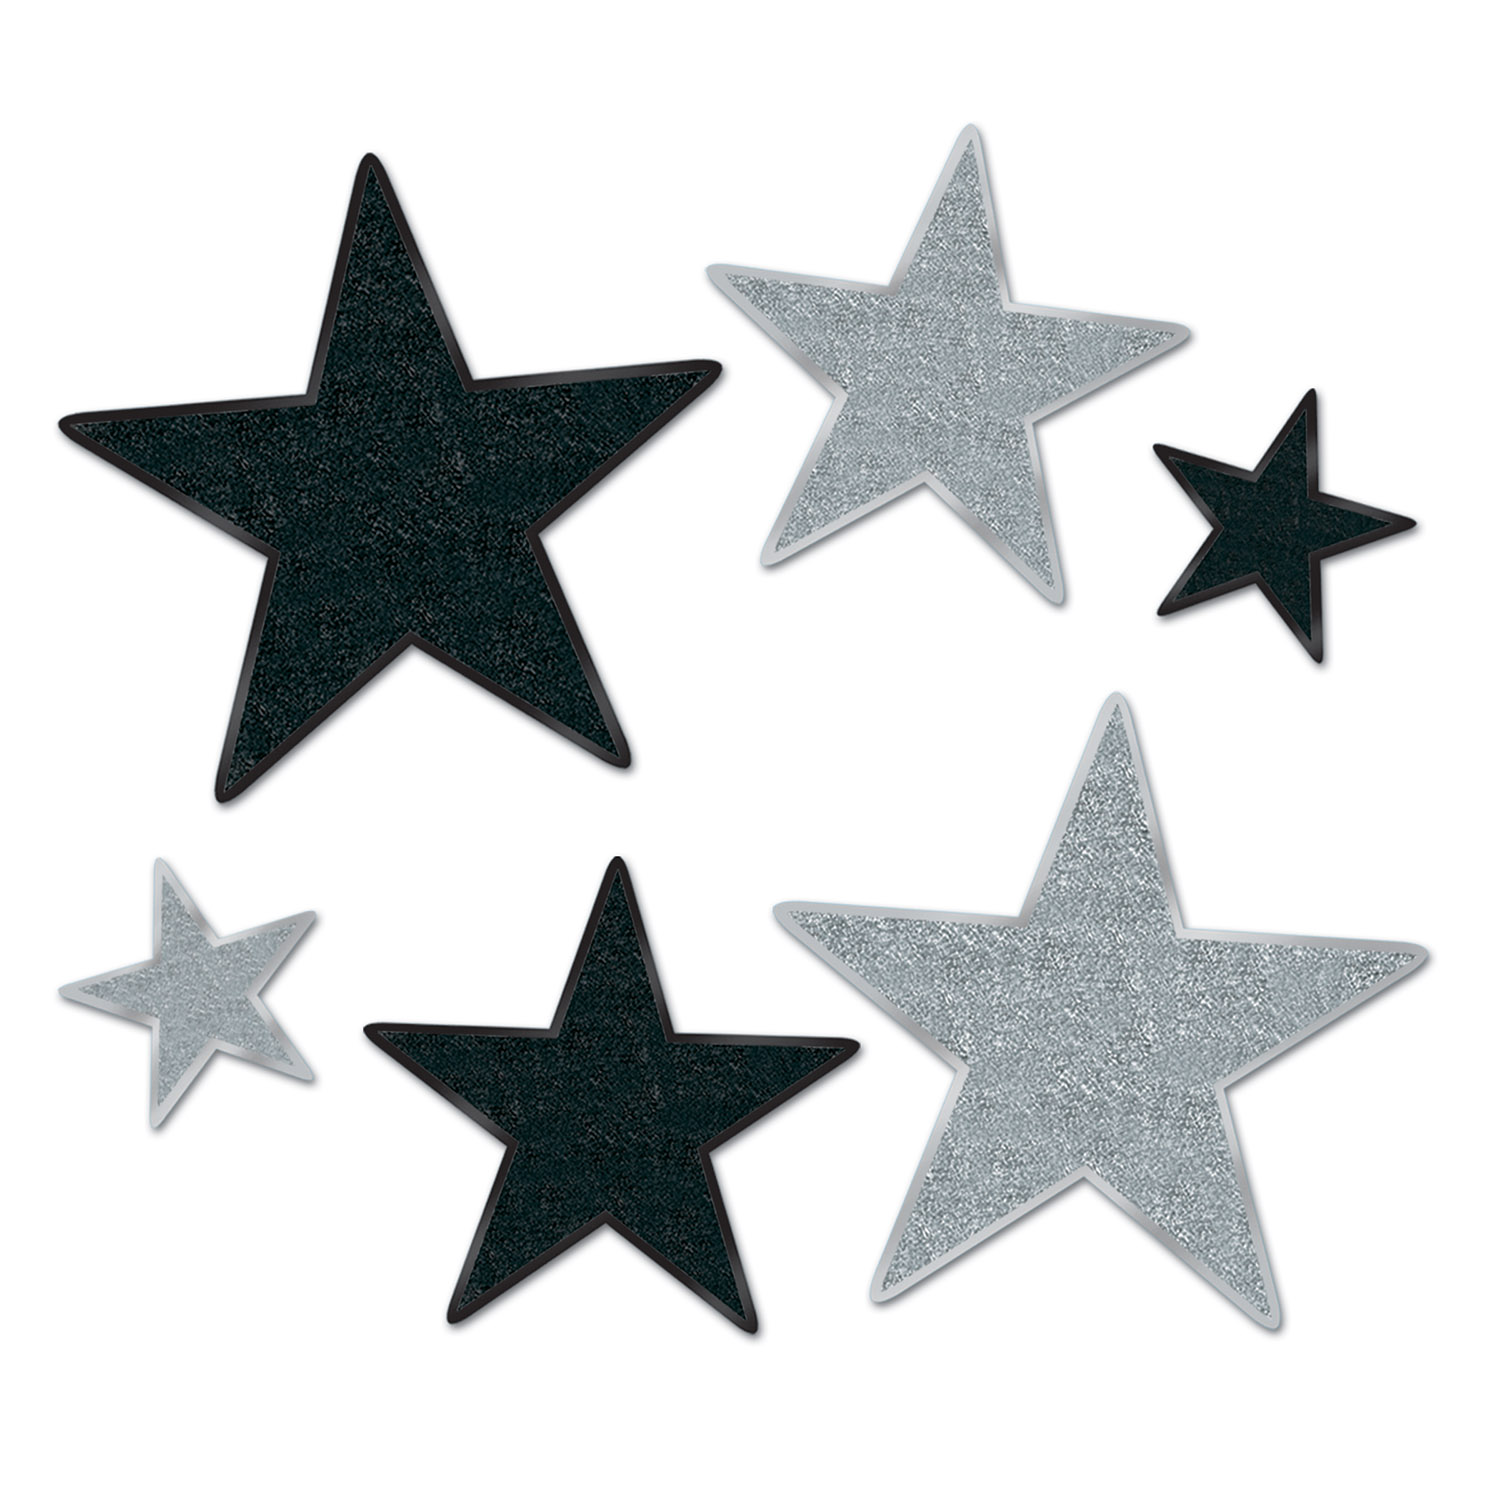 Glittered Star Cutouts Asstd asstd black & silver